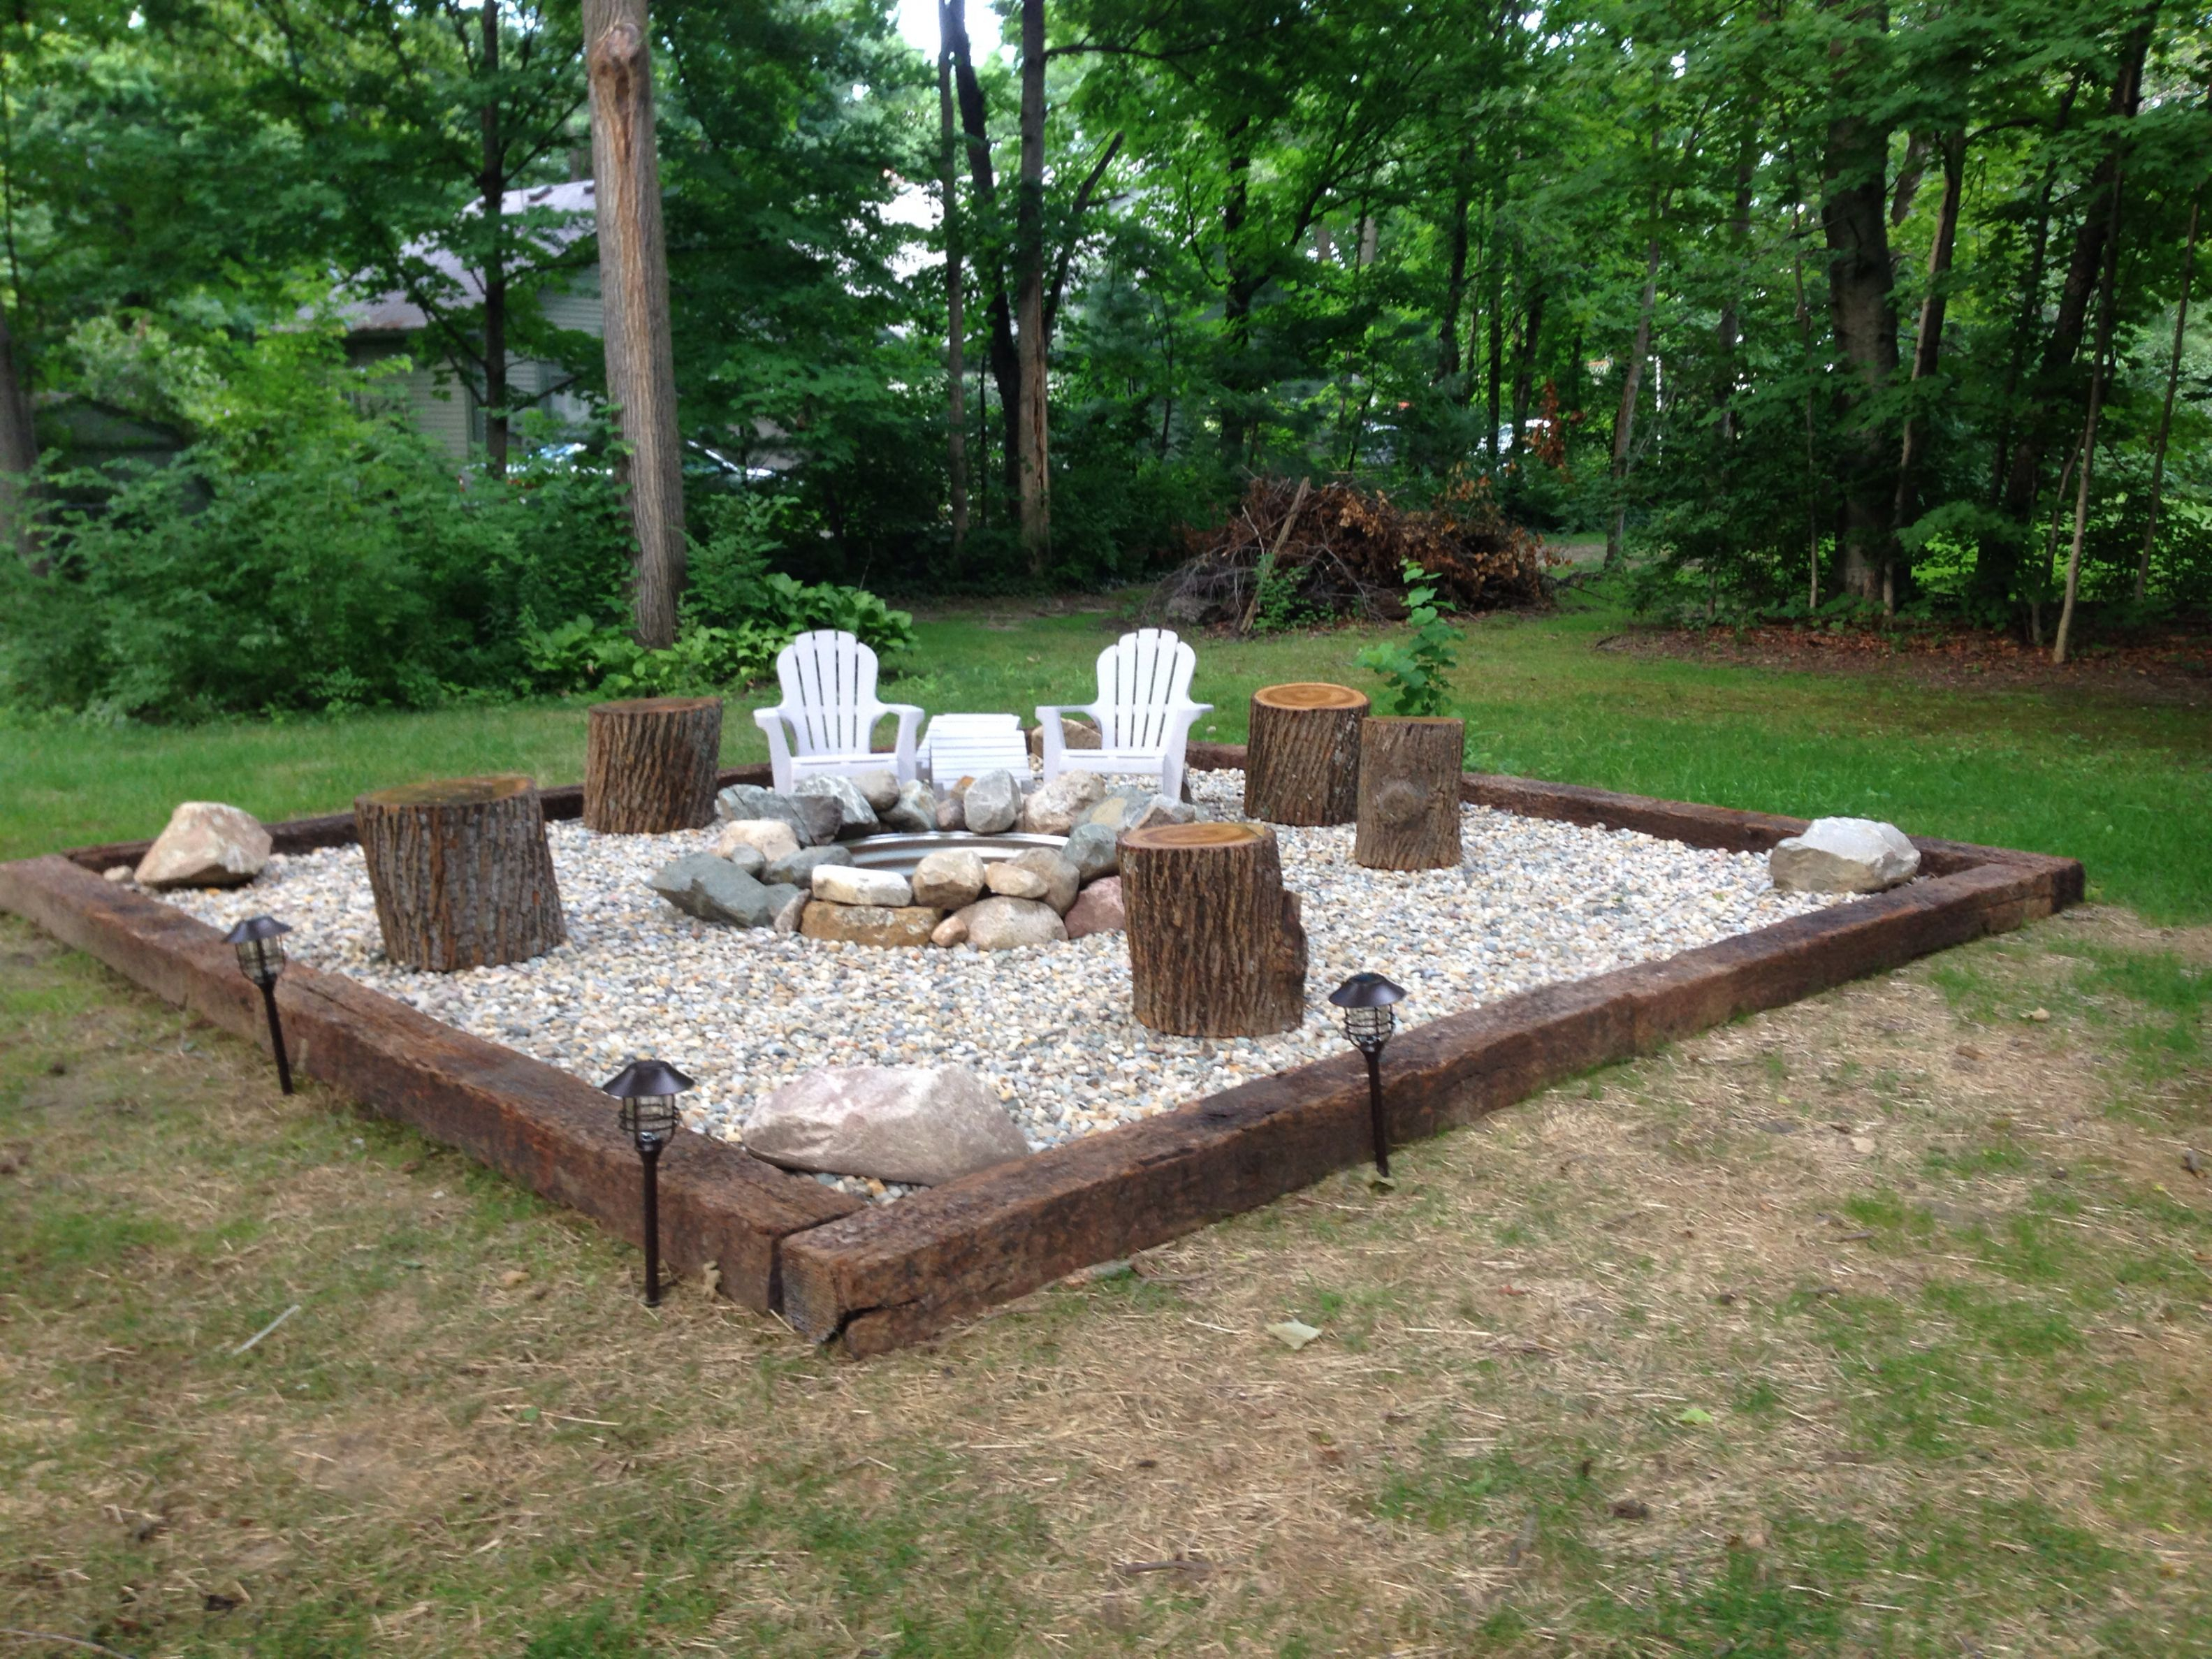 30 Best Backyard Fire Pit Area Inspirations For Your Cozy And Rustic in dimensions 3166 X 2375